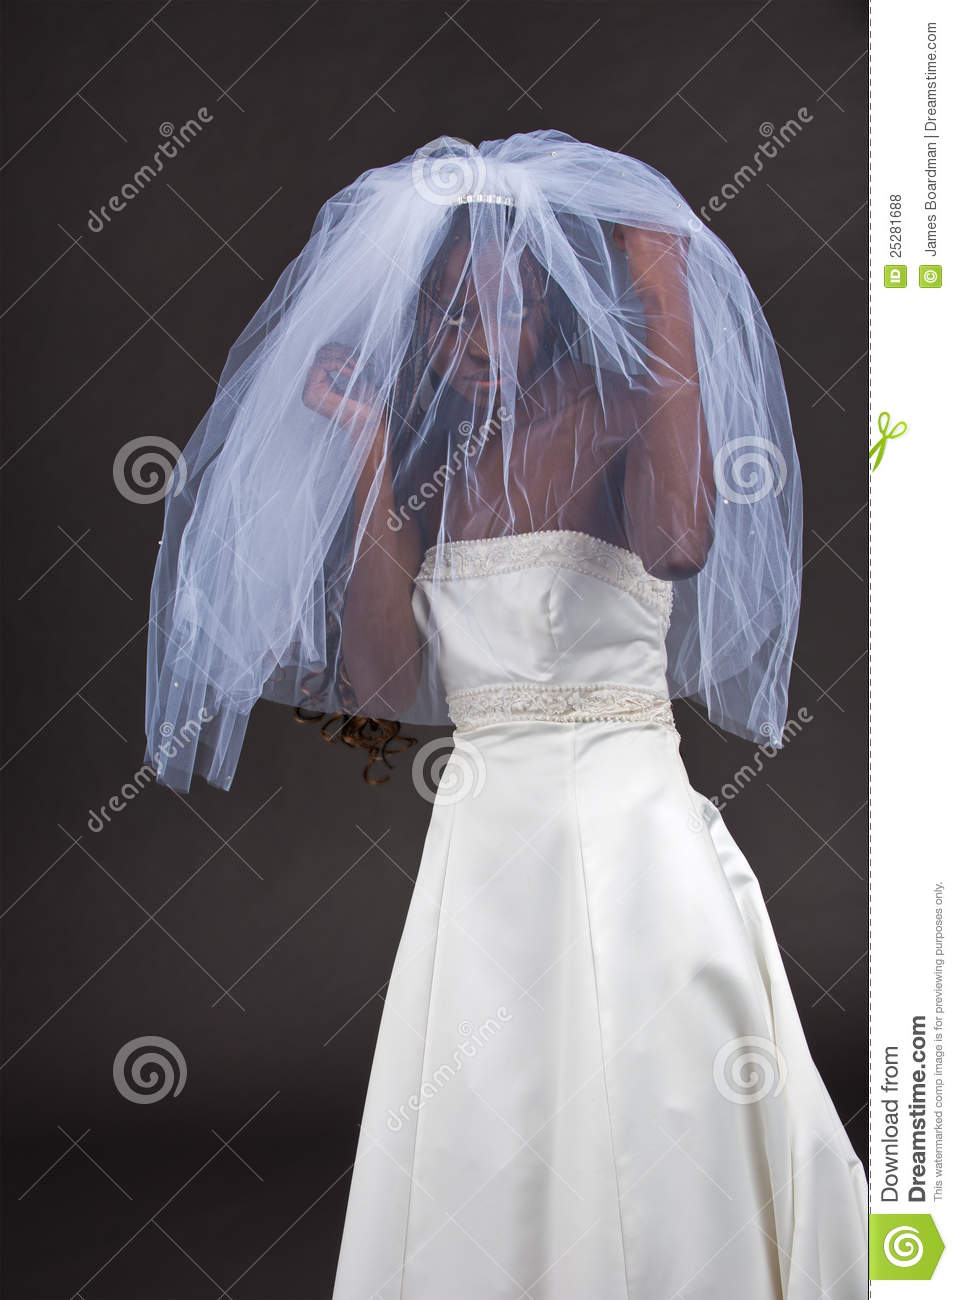 Beautiful black woman in a wedding dress royalty free stock photos royalty free stock photo download beautiful black woman in a wedding dress ombrellifo Image collections